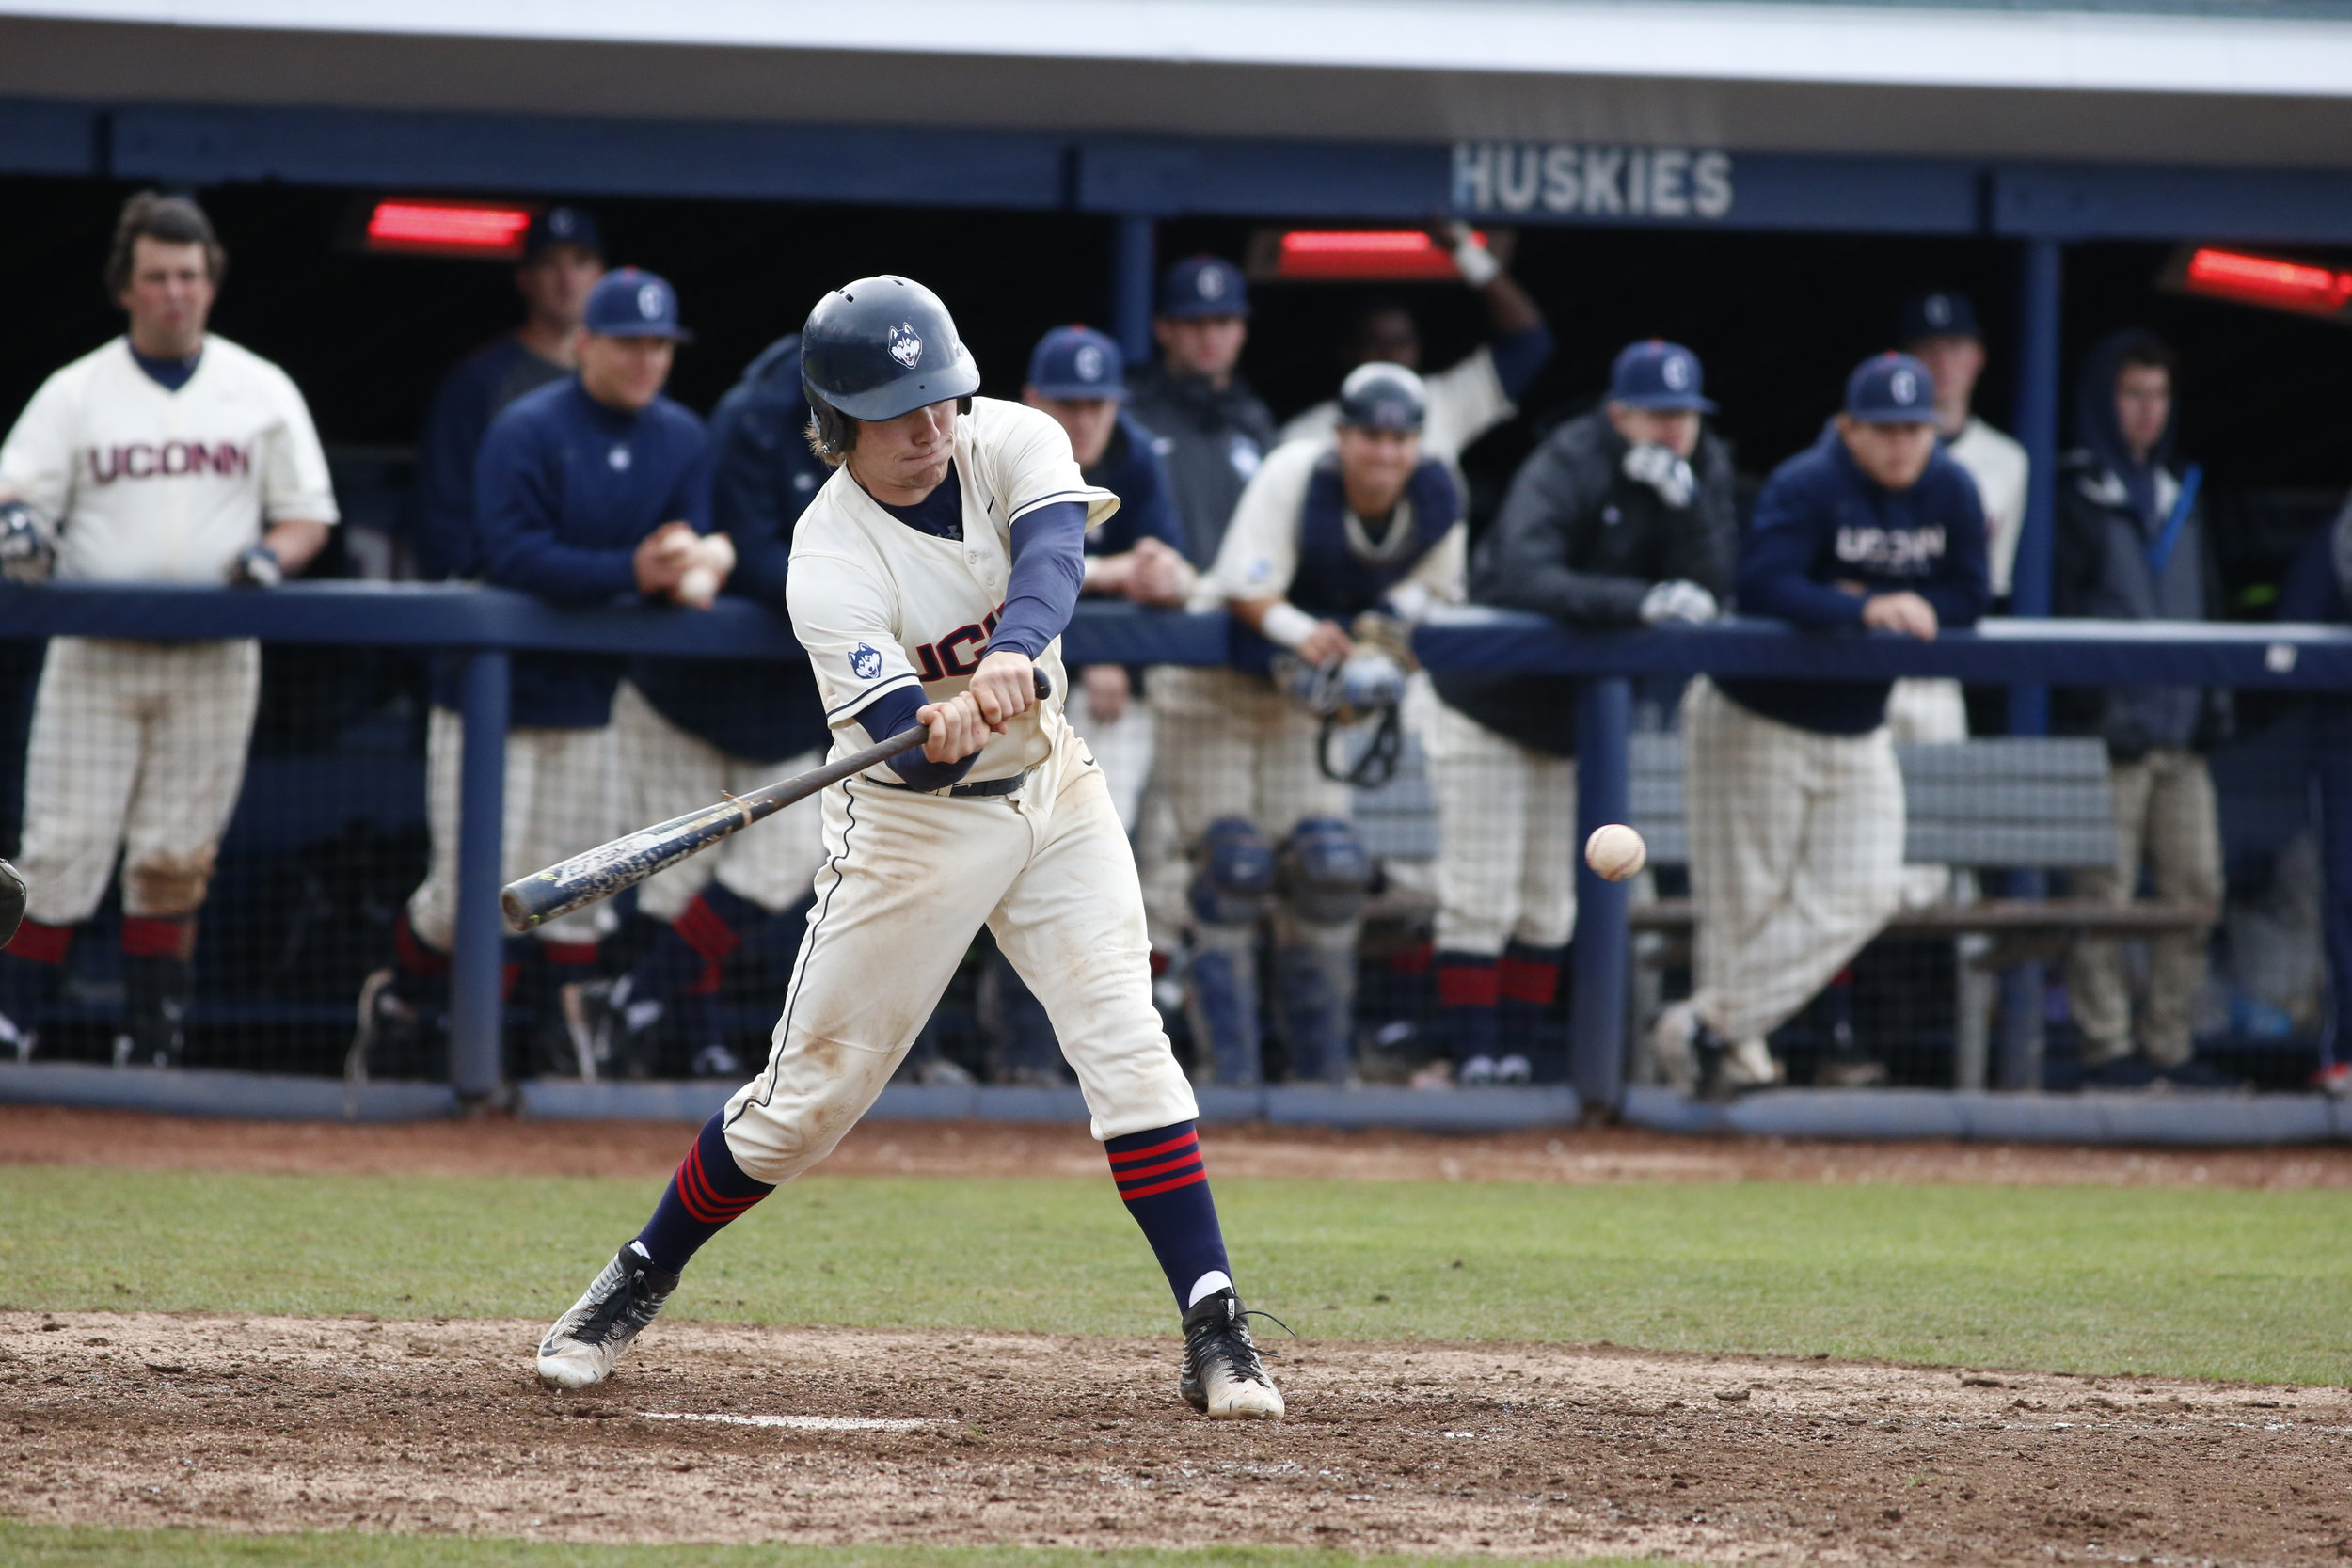 Willy Yahn swings the bat during the Huskies' 14-9 loss to Tulane on Saturday, April 2, 2016. Yahn is expected to miss 4-5 weeks after re-injuring his right hand. (Tyler Benton/The Daily Campus)